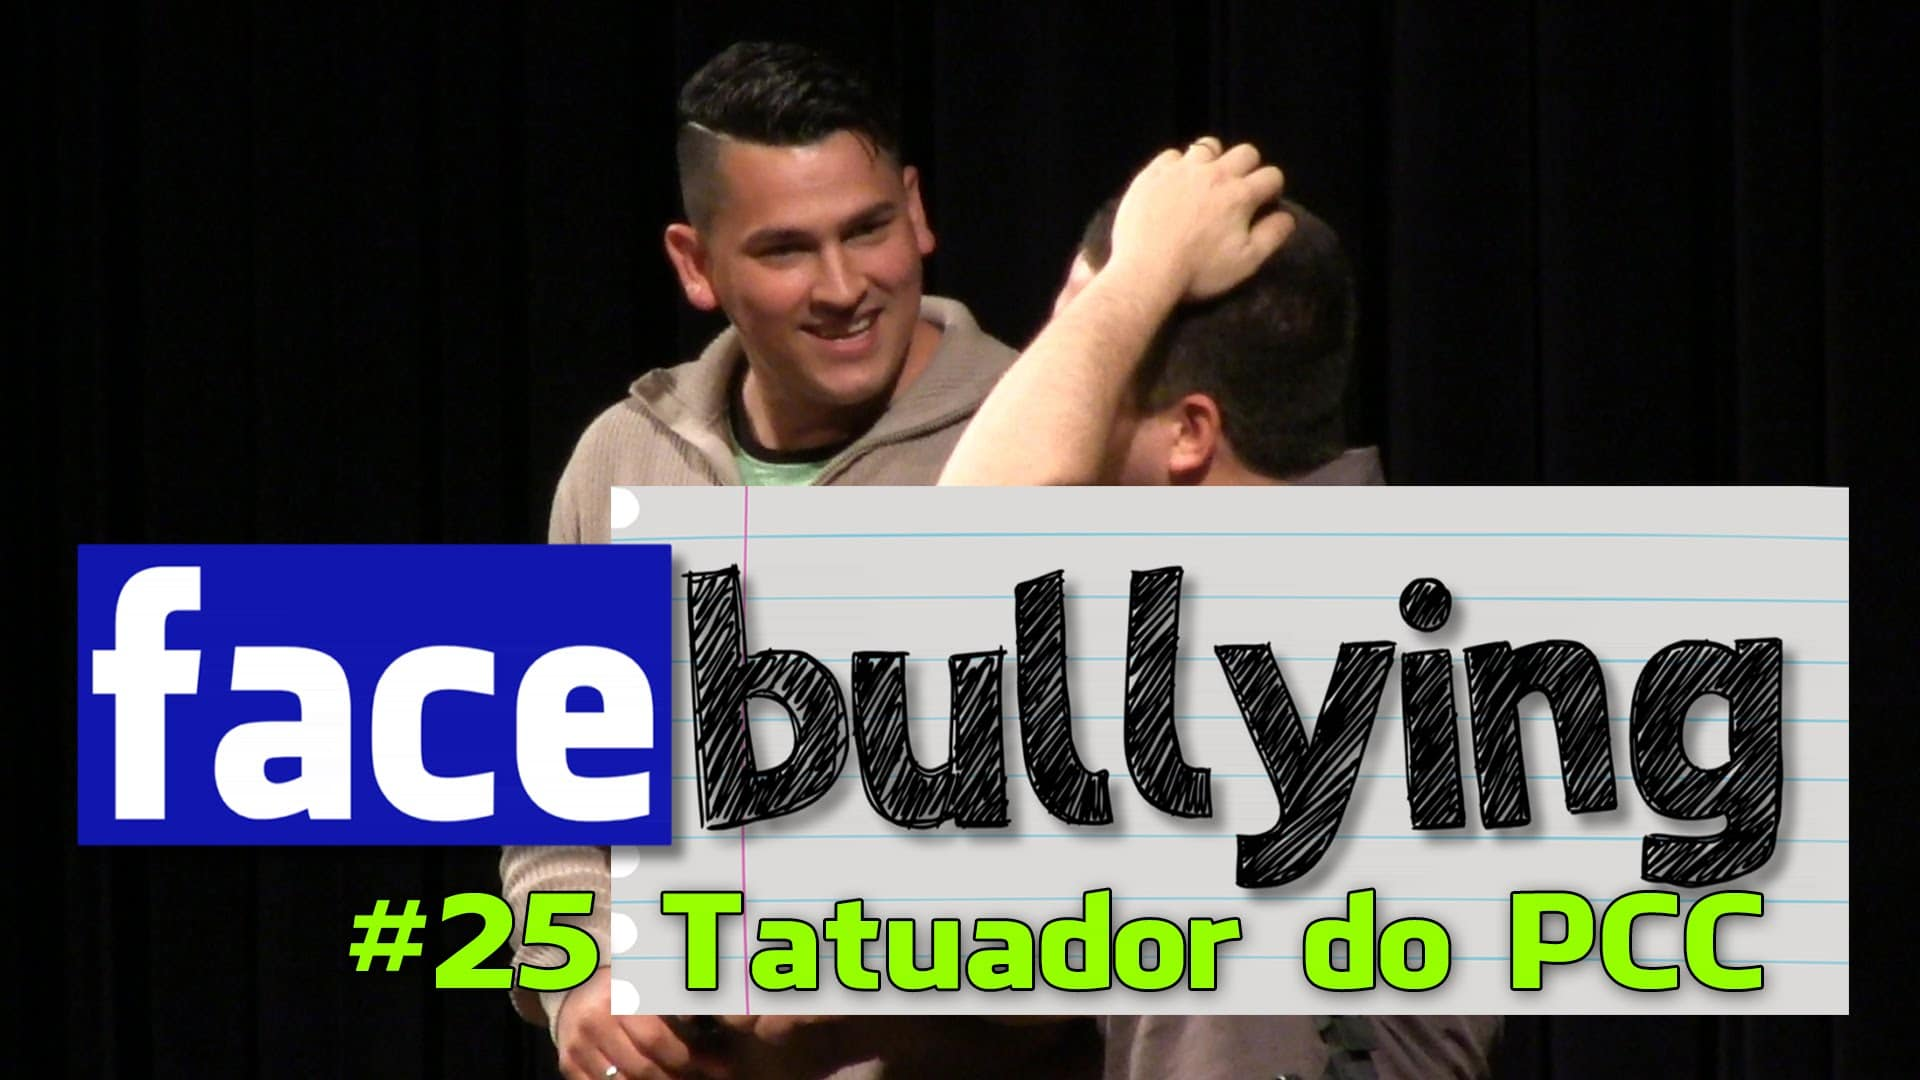 Facebullying – Tatuador do PCC